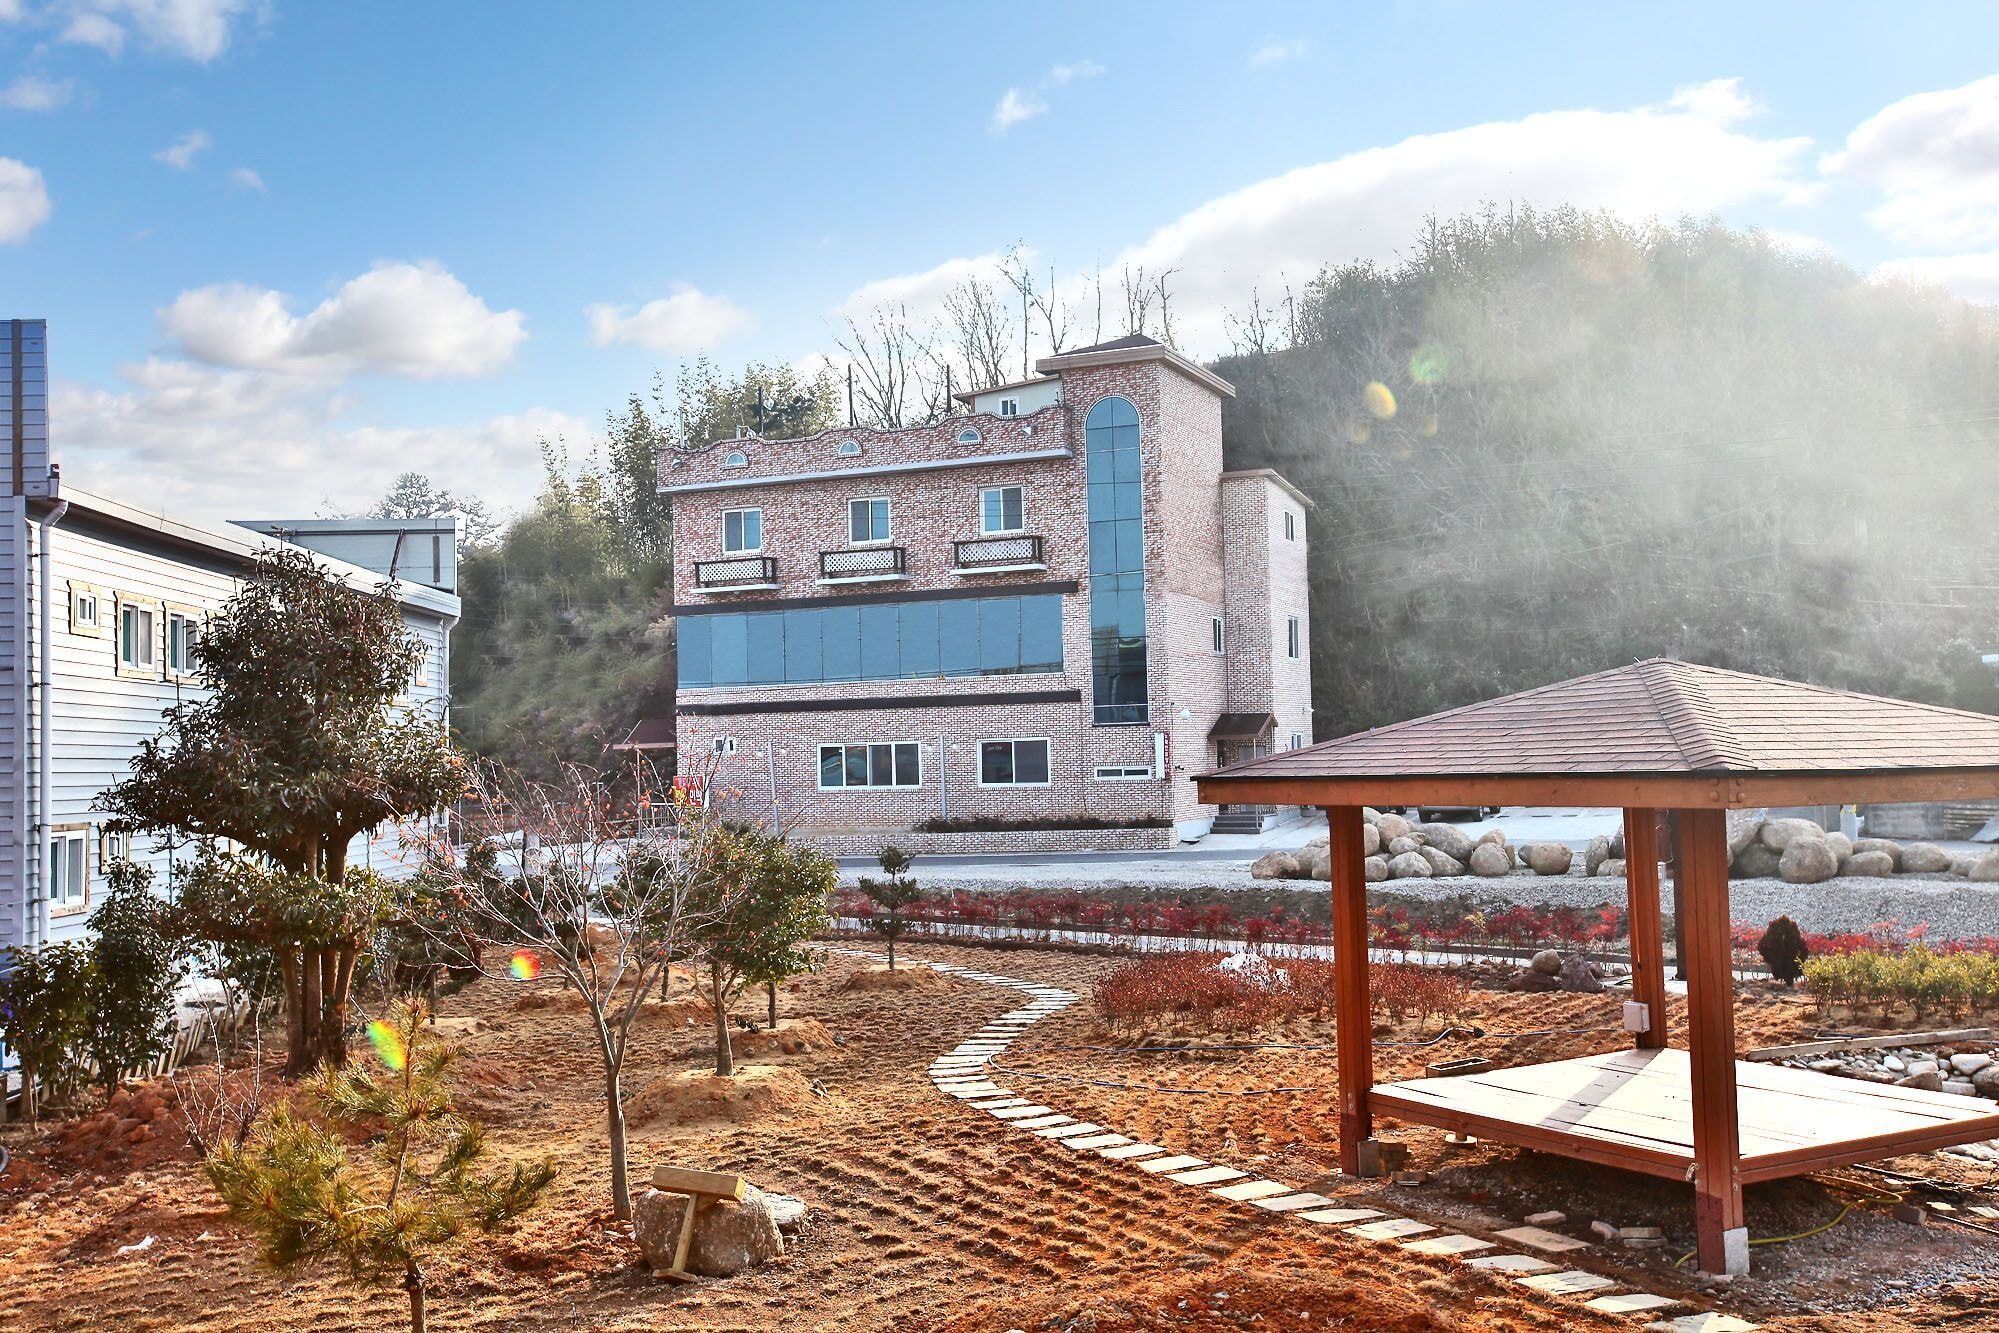 Suncheon Galdae Story Pension, Suncheon